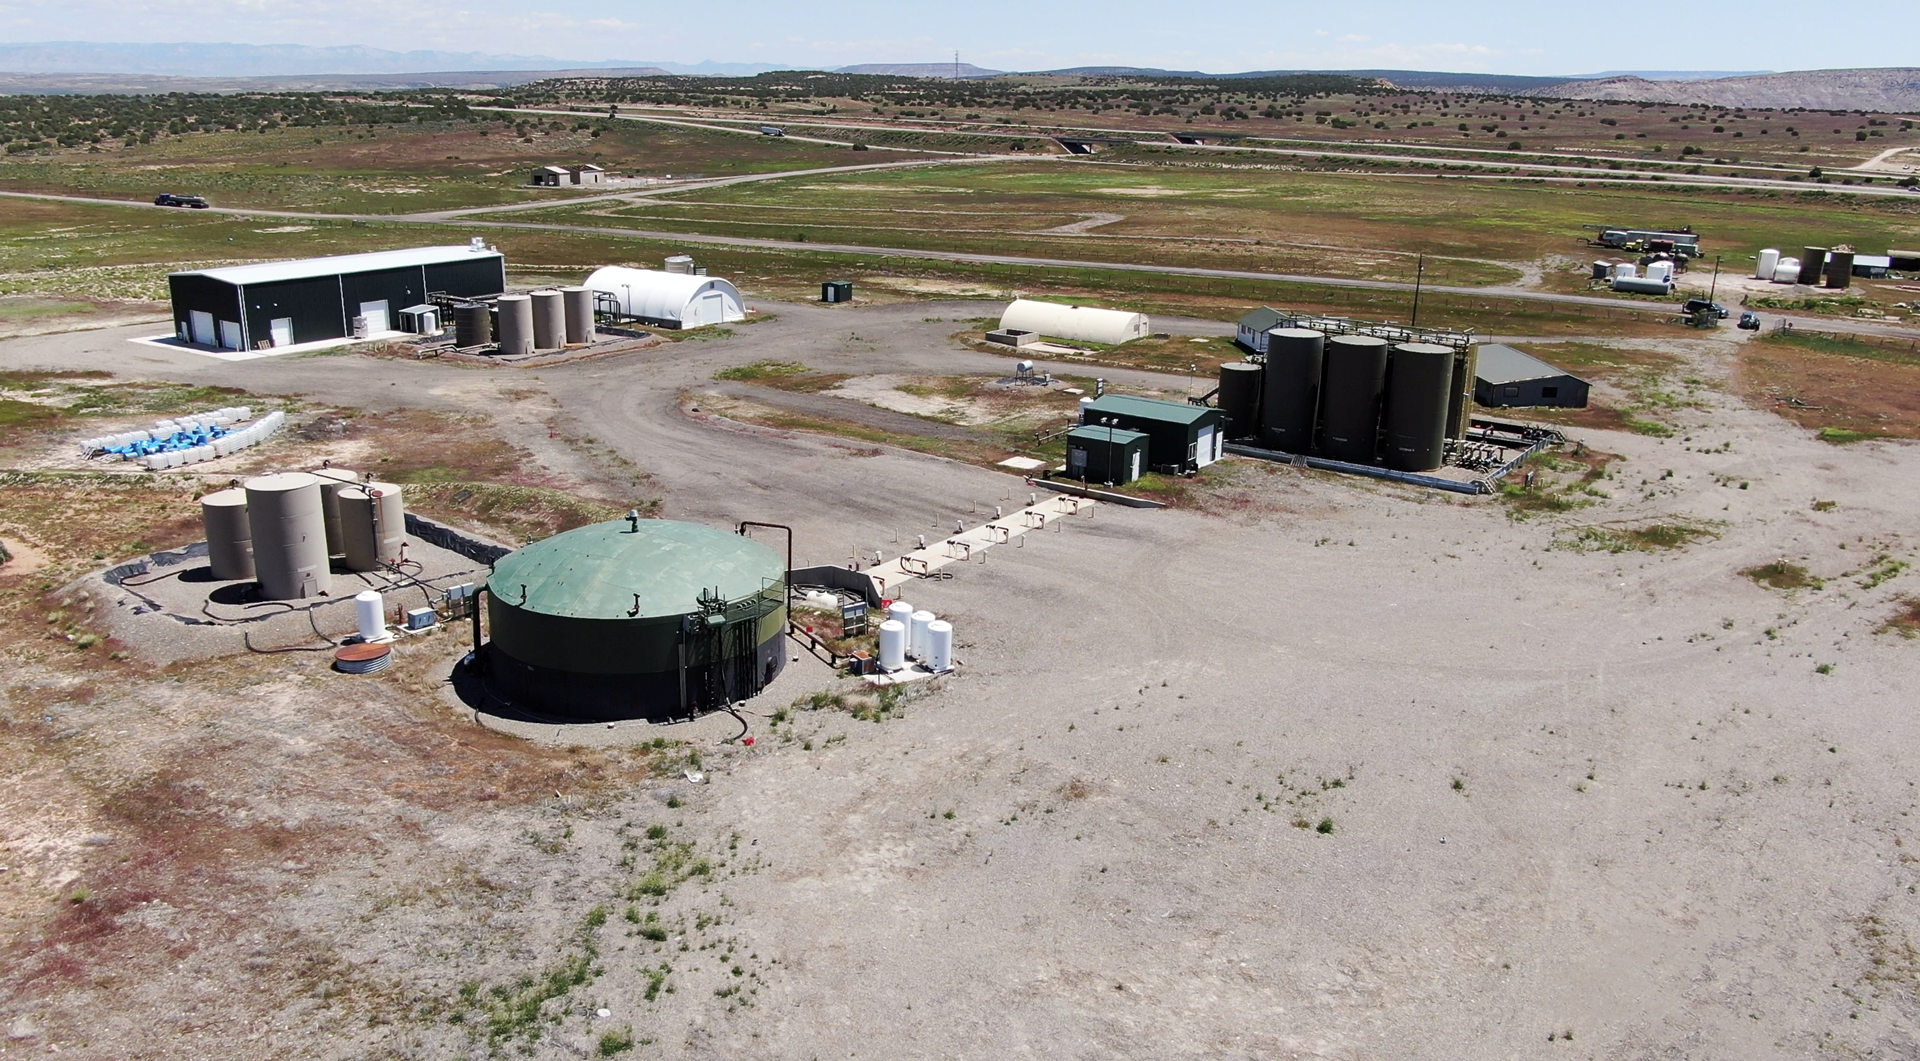 Utah fracking waste water treatment facility near I-70